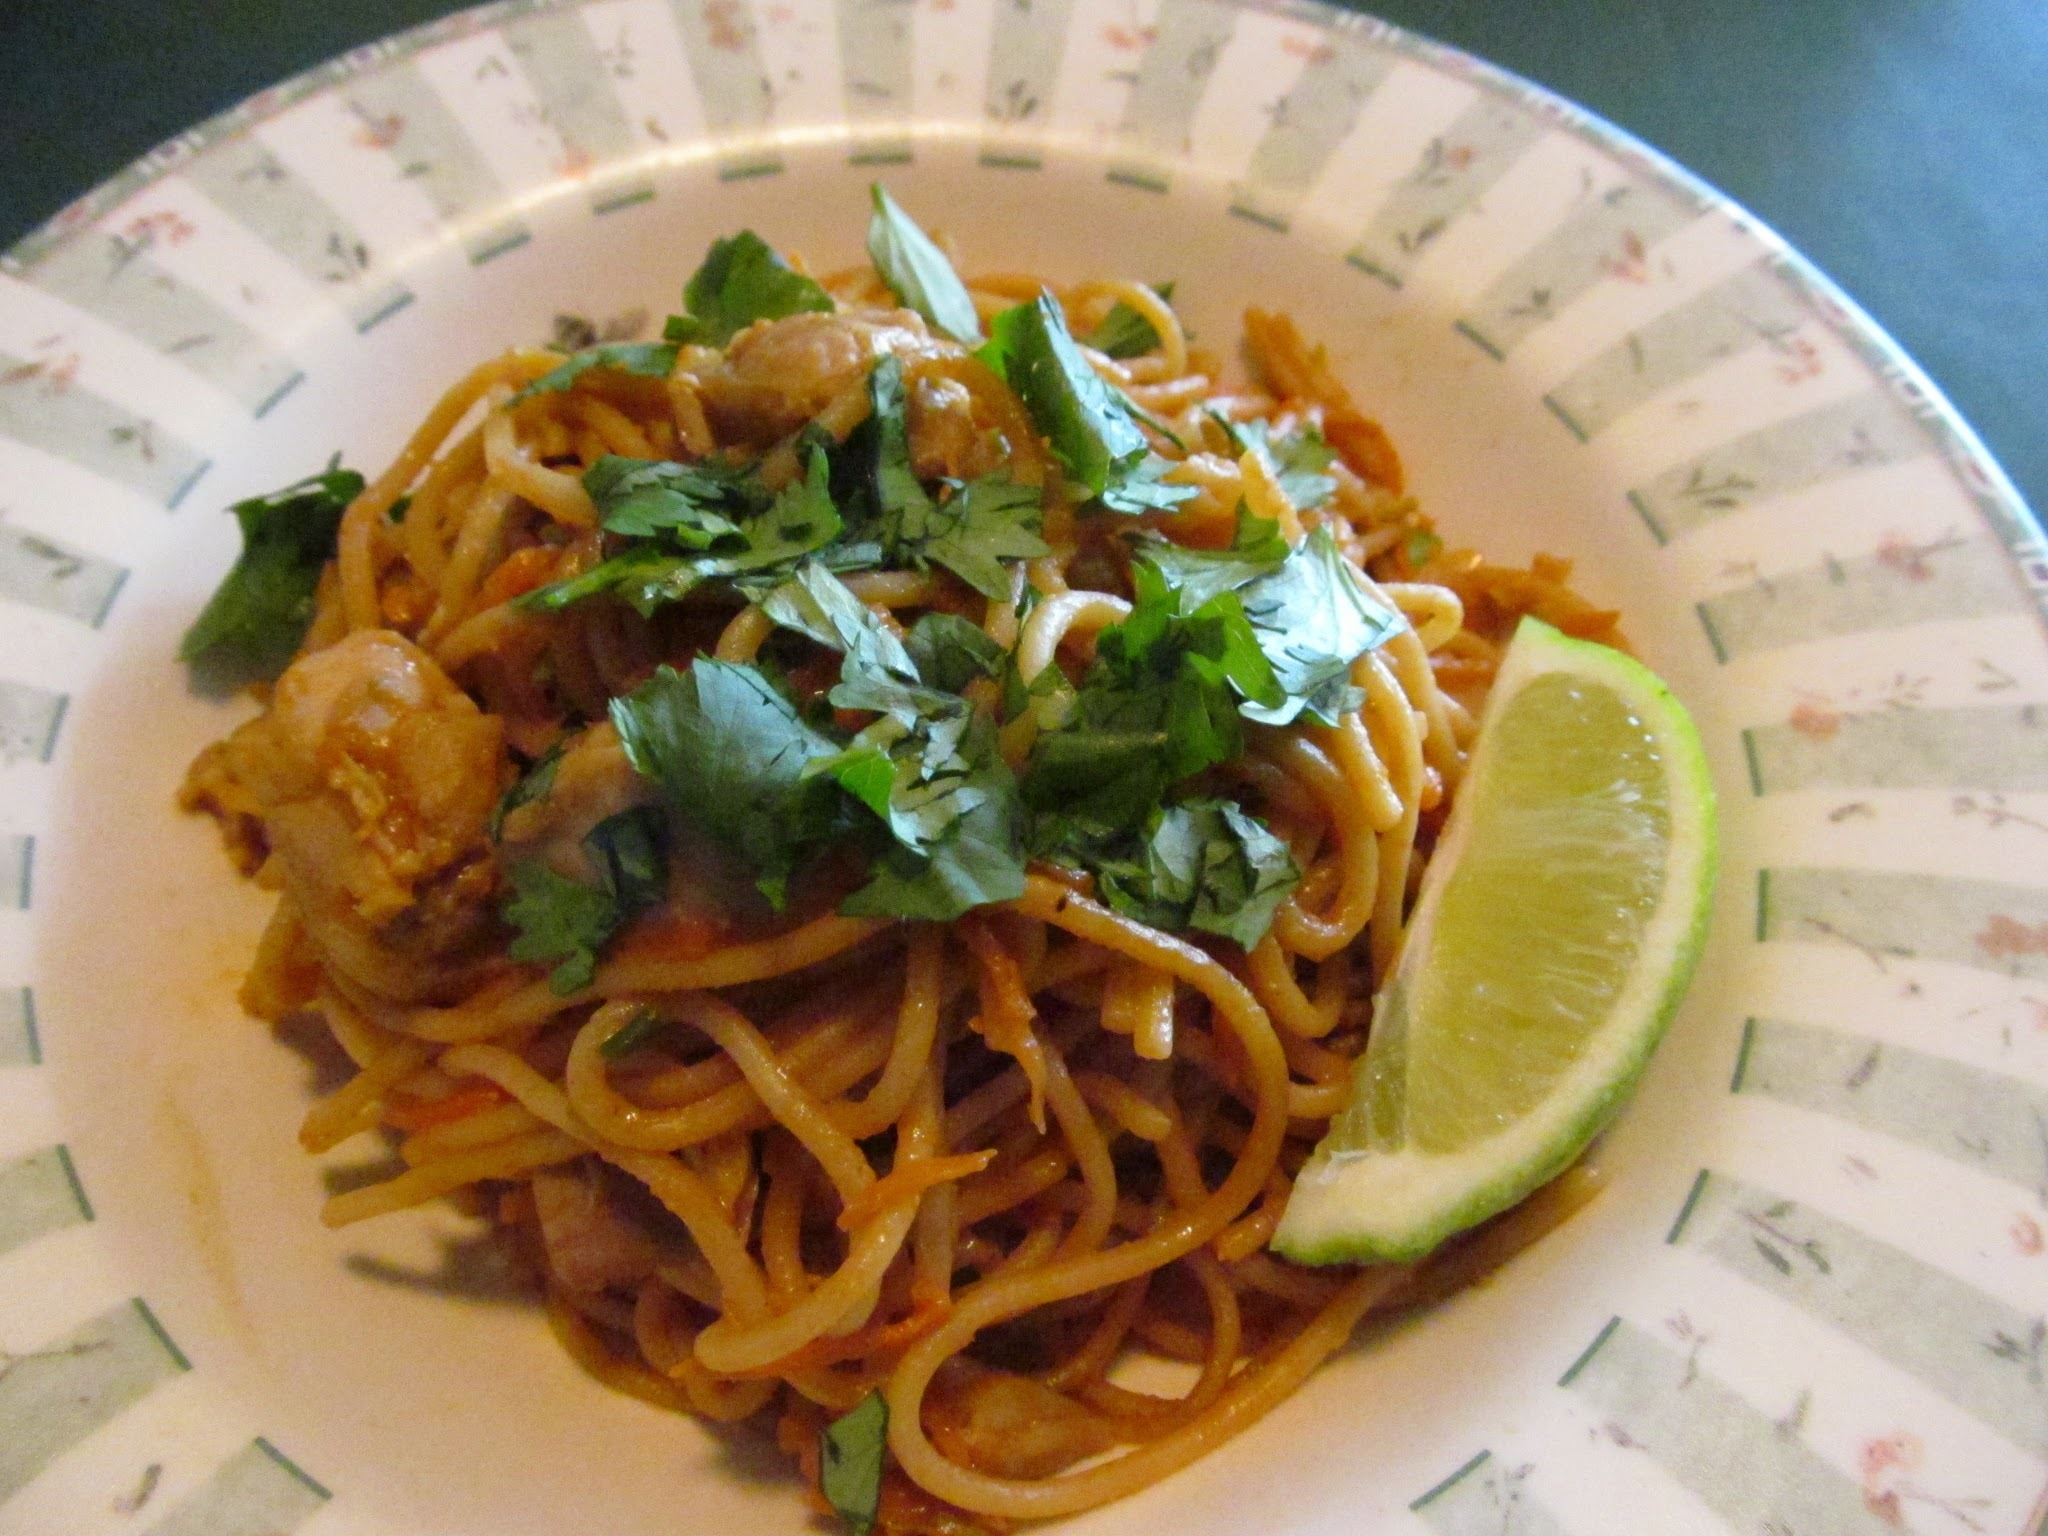 Savings for Sisters #172 - Spicy Thai Noodles